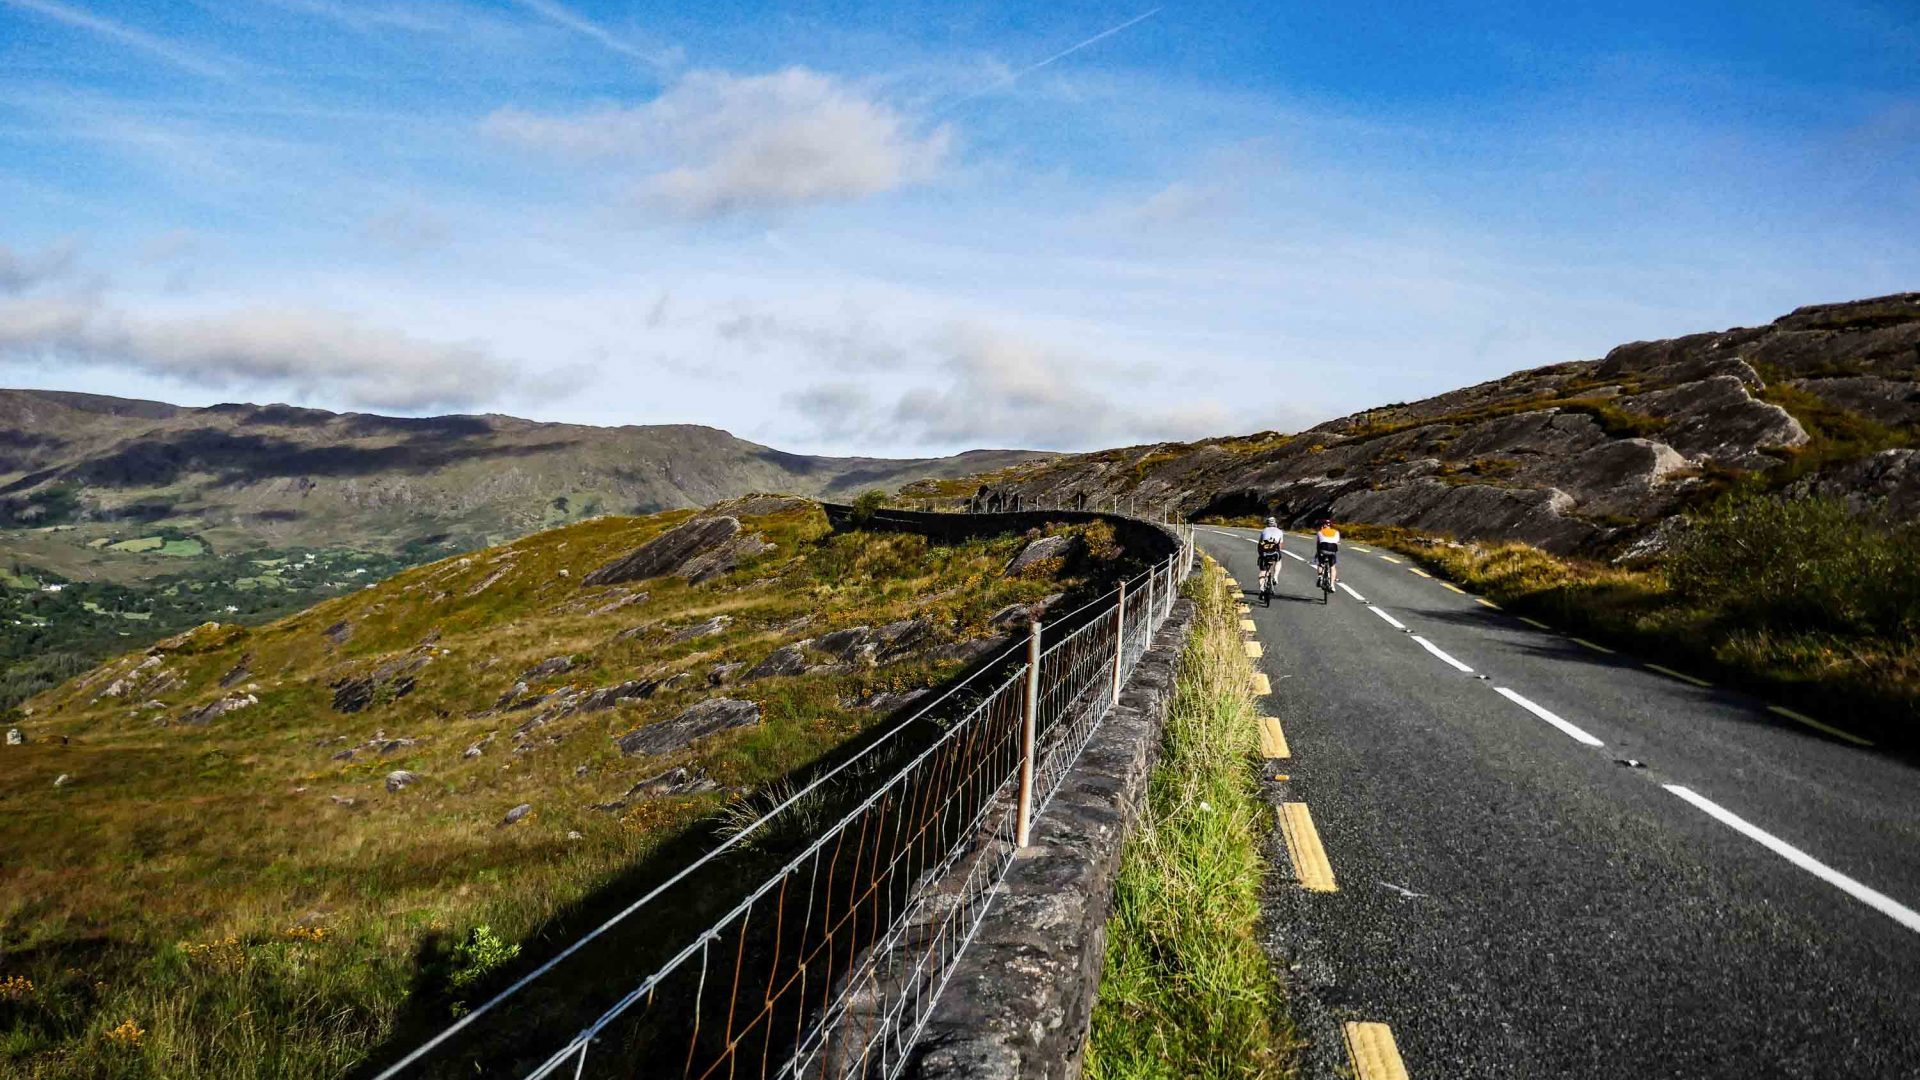 How an IT consultant created Ireland's most spectacular end-to-end cycling route